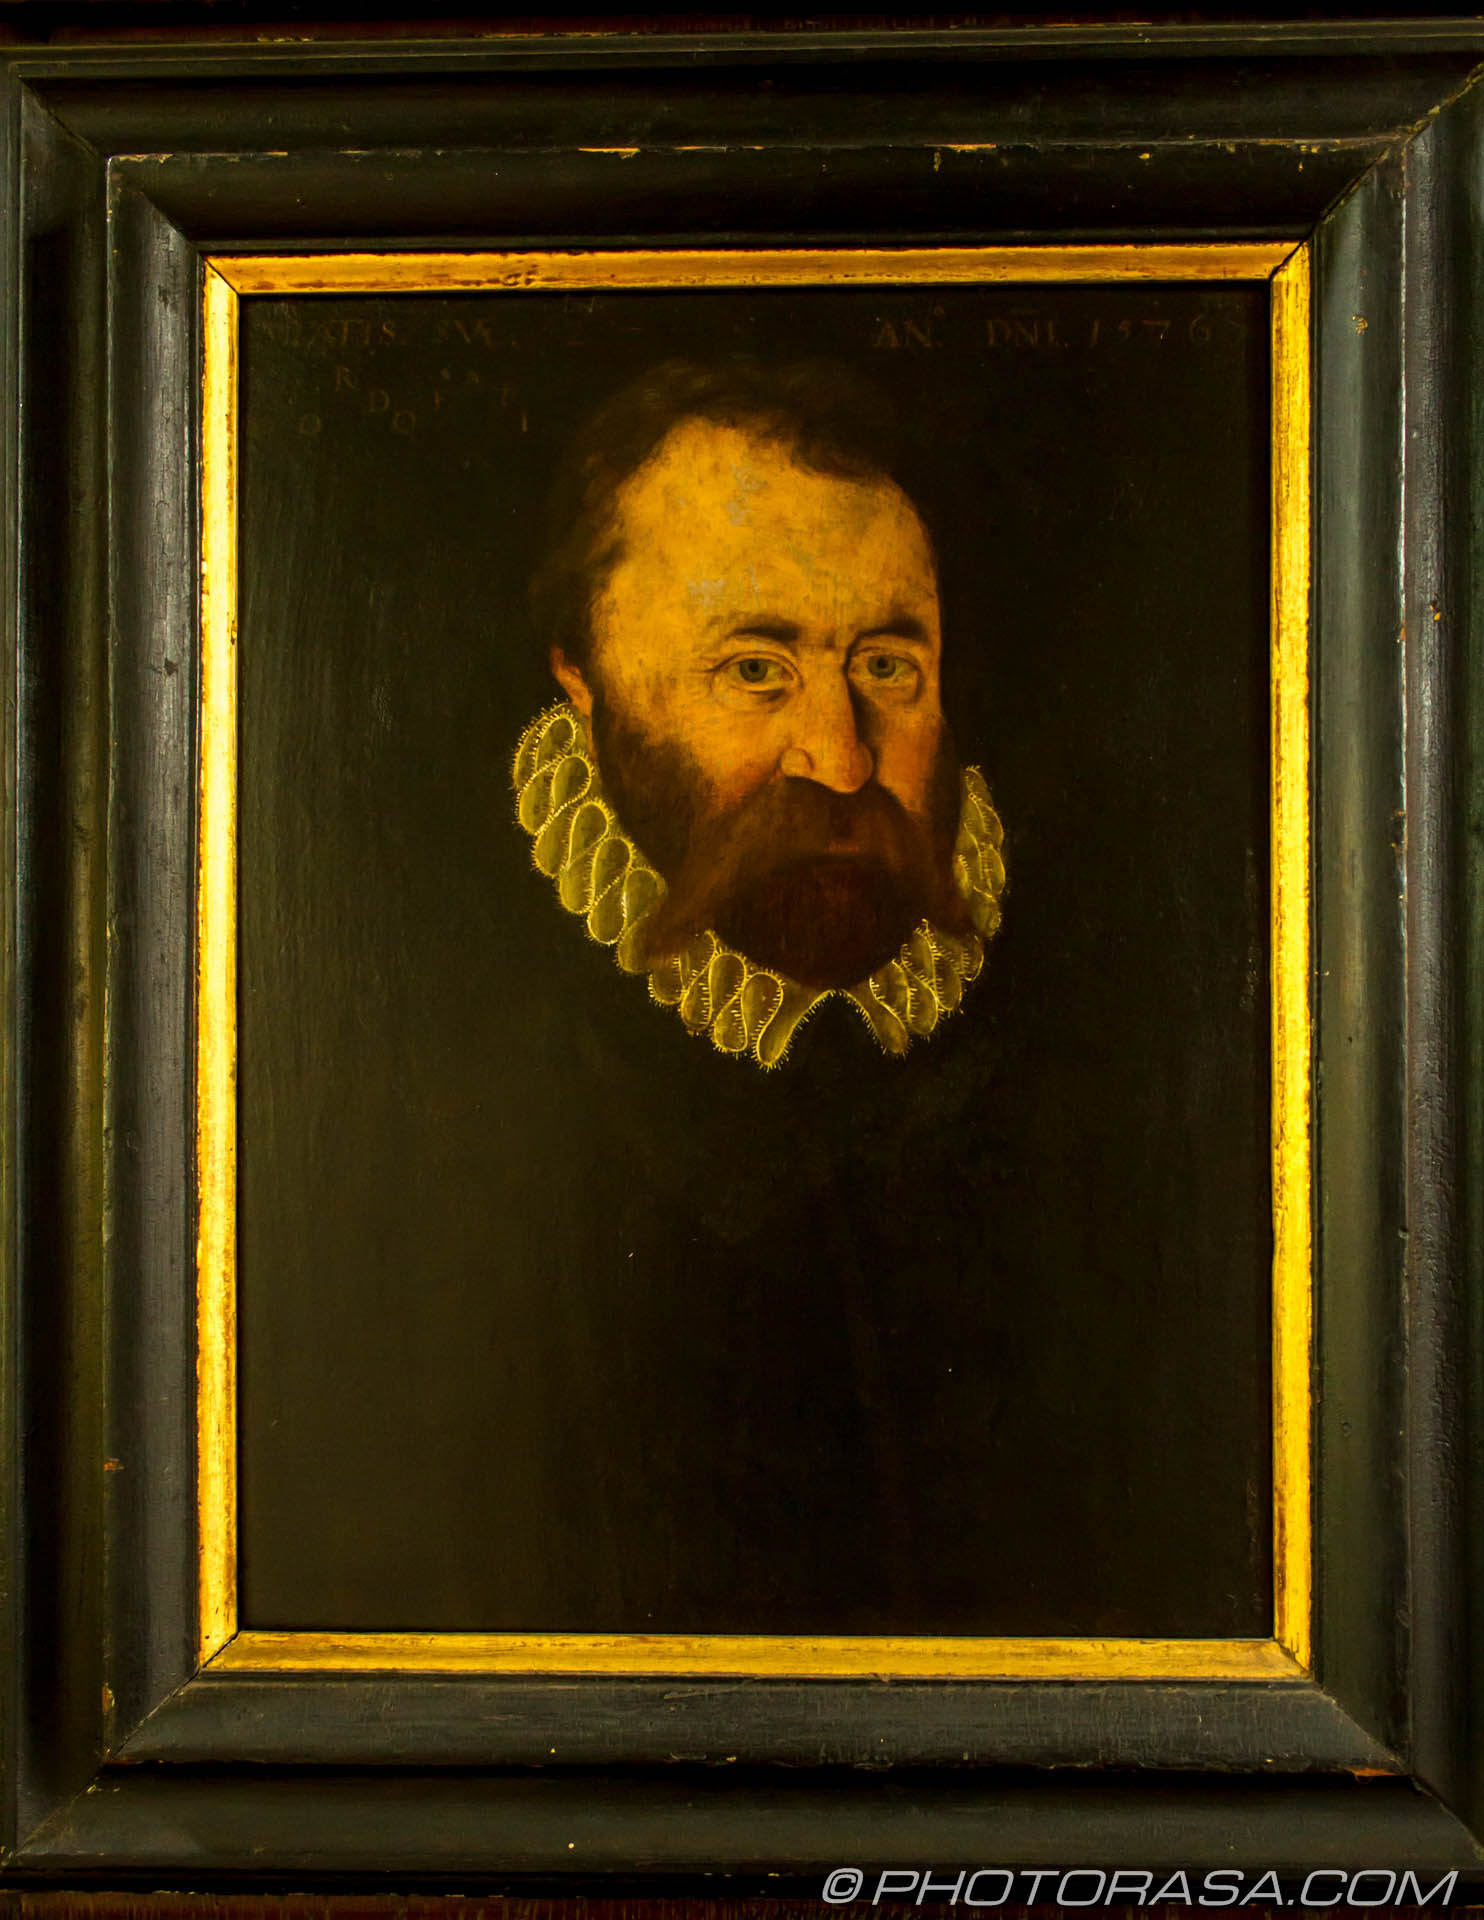 https://photorasa.com/stoneacre-house-paintings/elizabethan-picture-of-bearded-man-in-small-ruff/